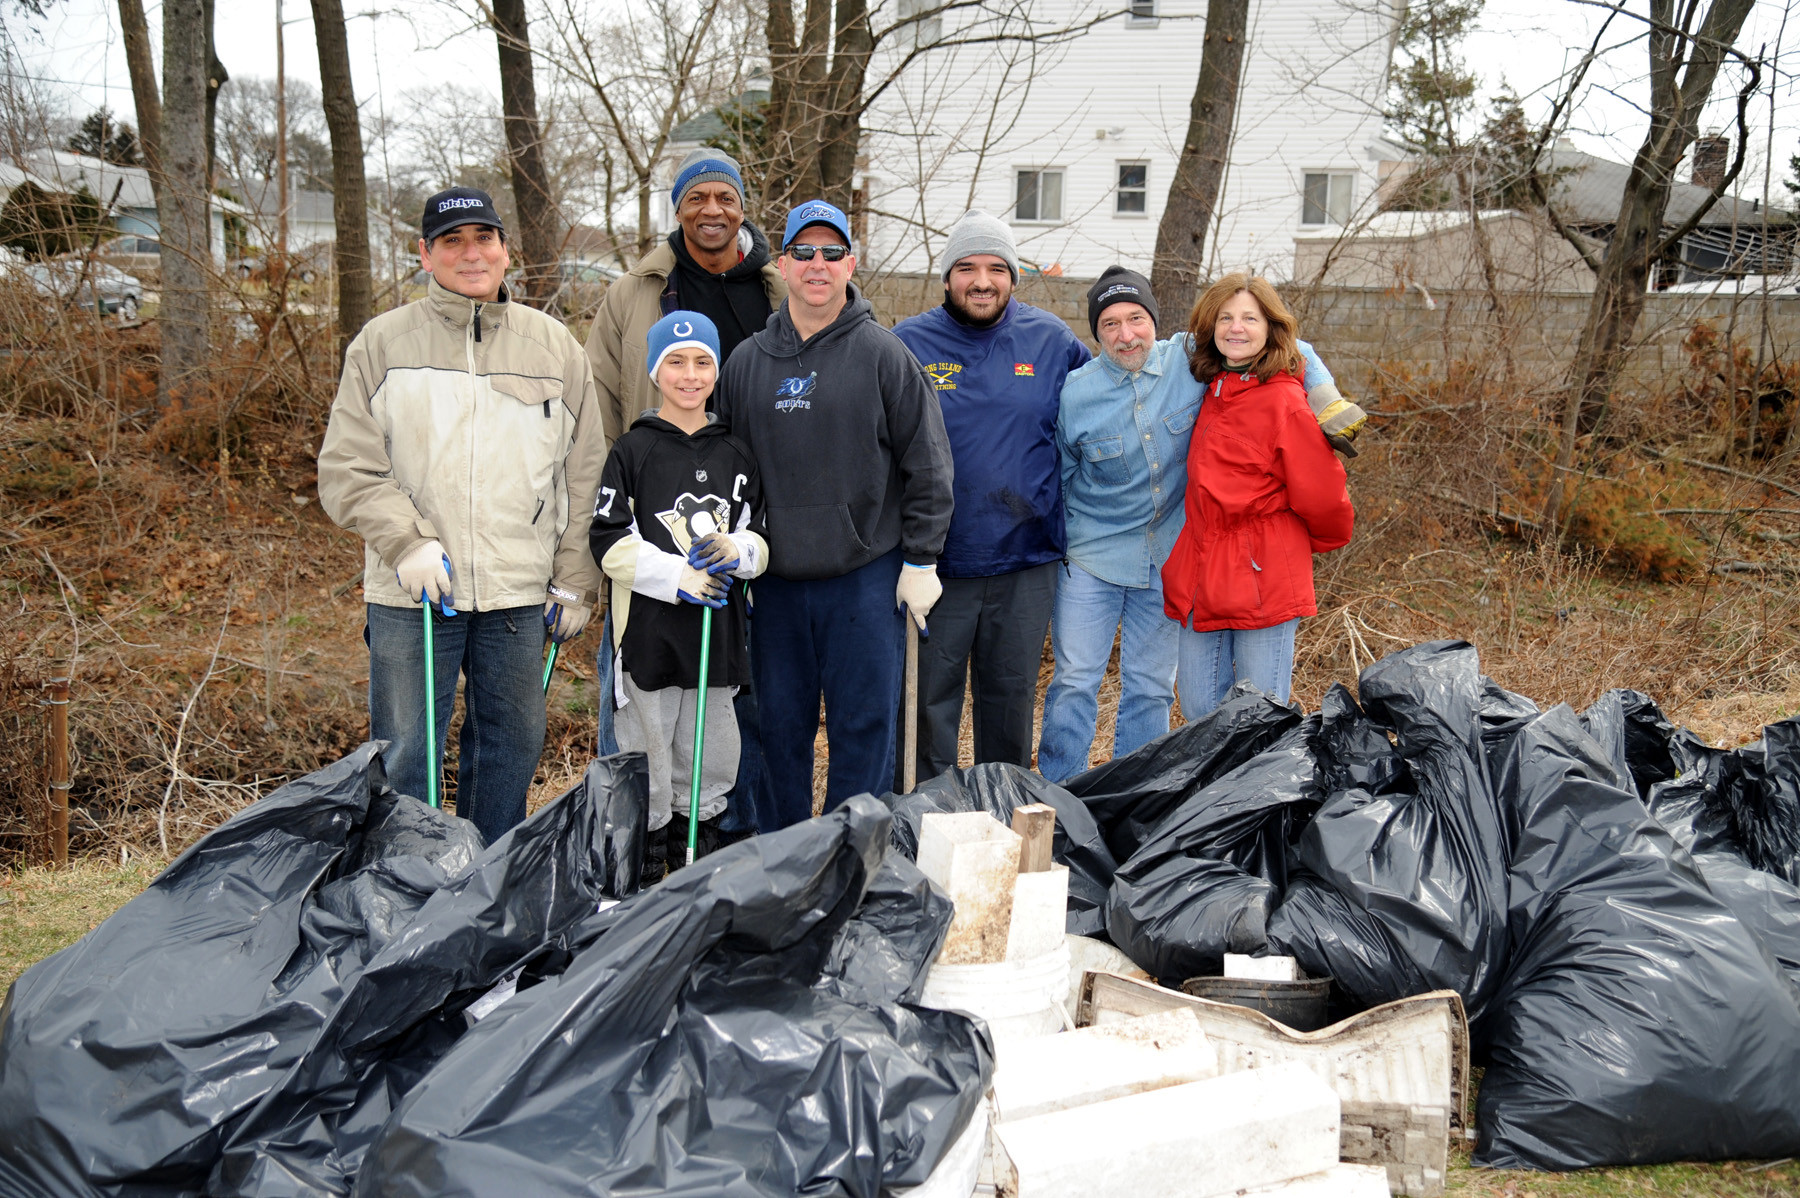 Several Valley Stream residents helped clean up a stream in North Valley Stream last Sunday morning. From Left are Nick Spaventa, Everett Gamory, Brian Milone, Victor Milone, David Sabatino, Bob and Joan Cesario.